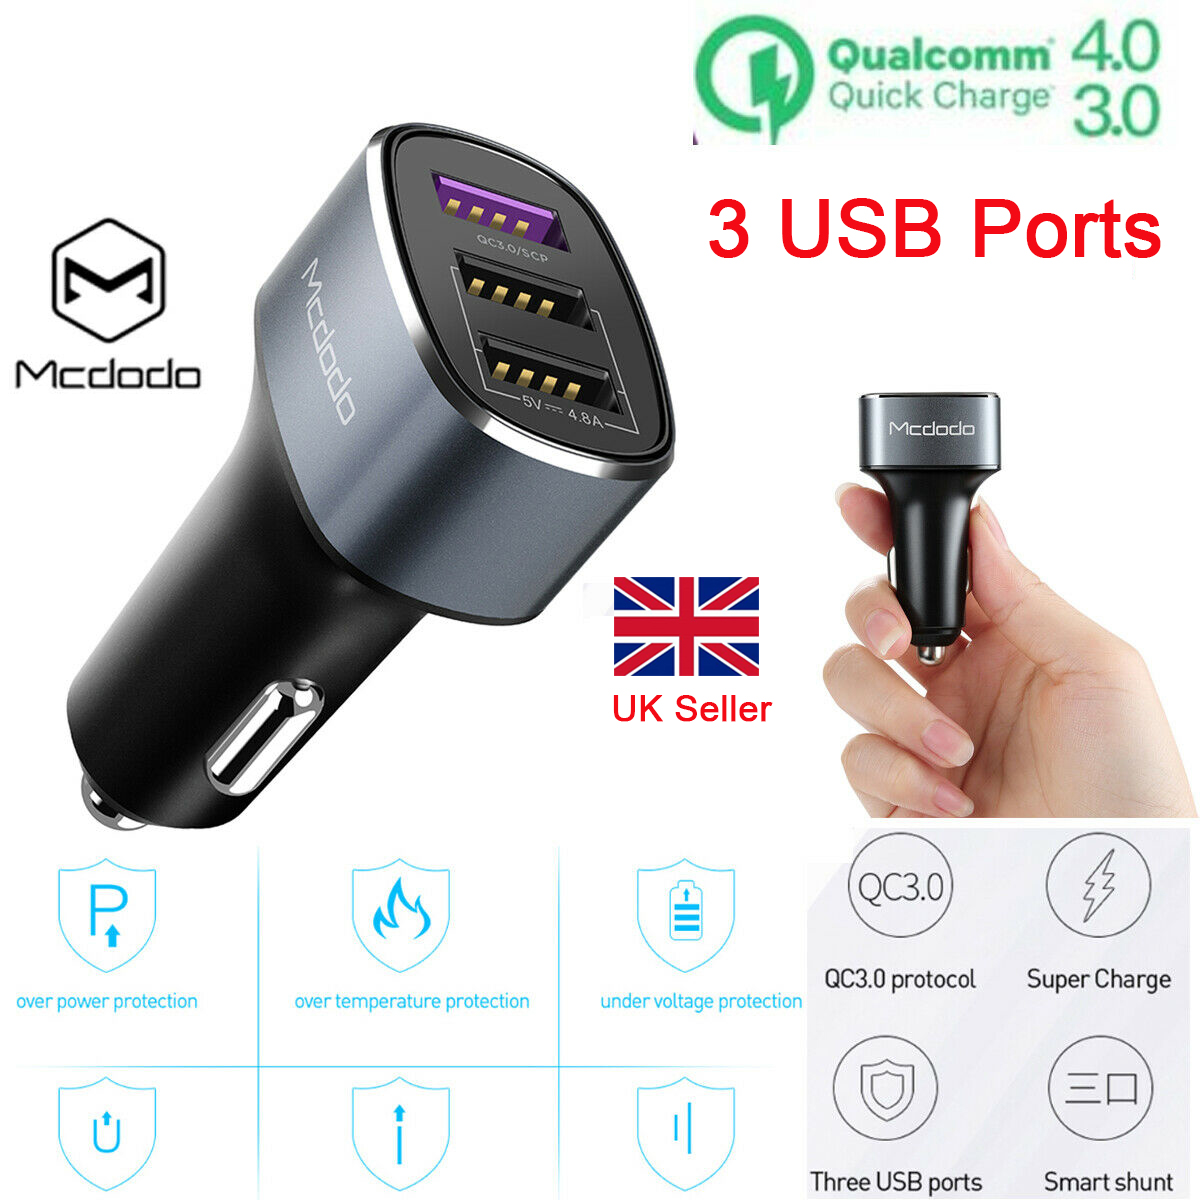 Quick Charge Qualcomm QC 3.0 4.0 Car Charger 3 Ports USB